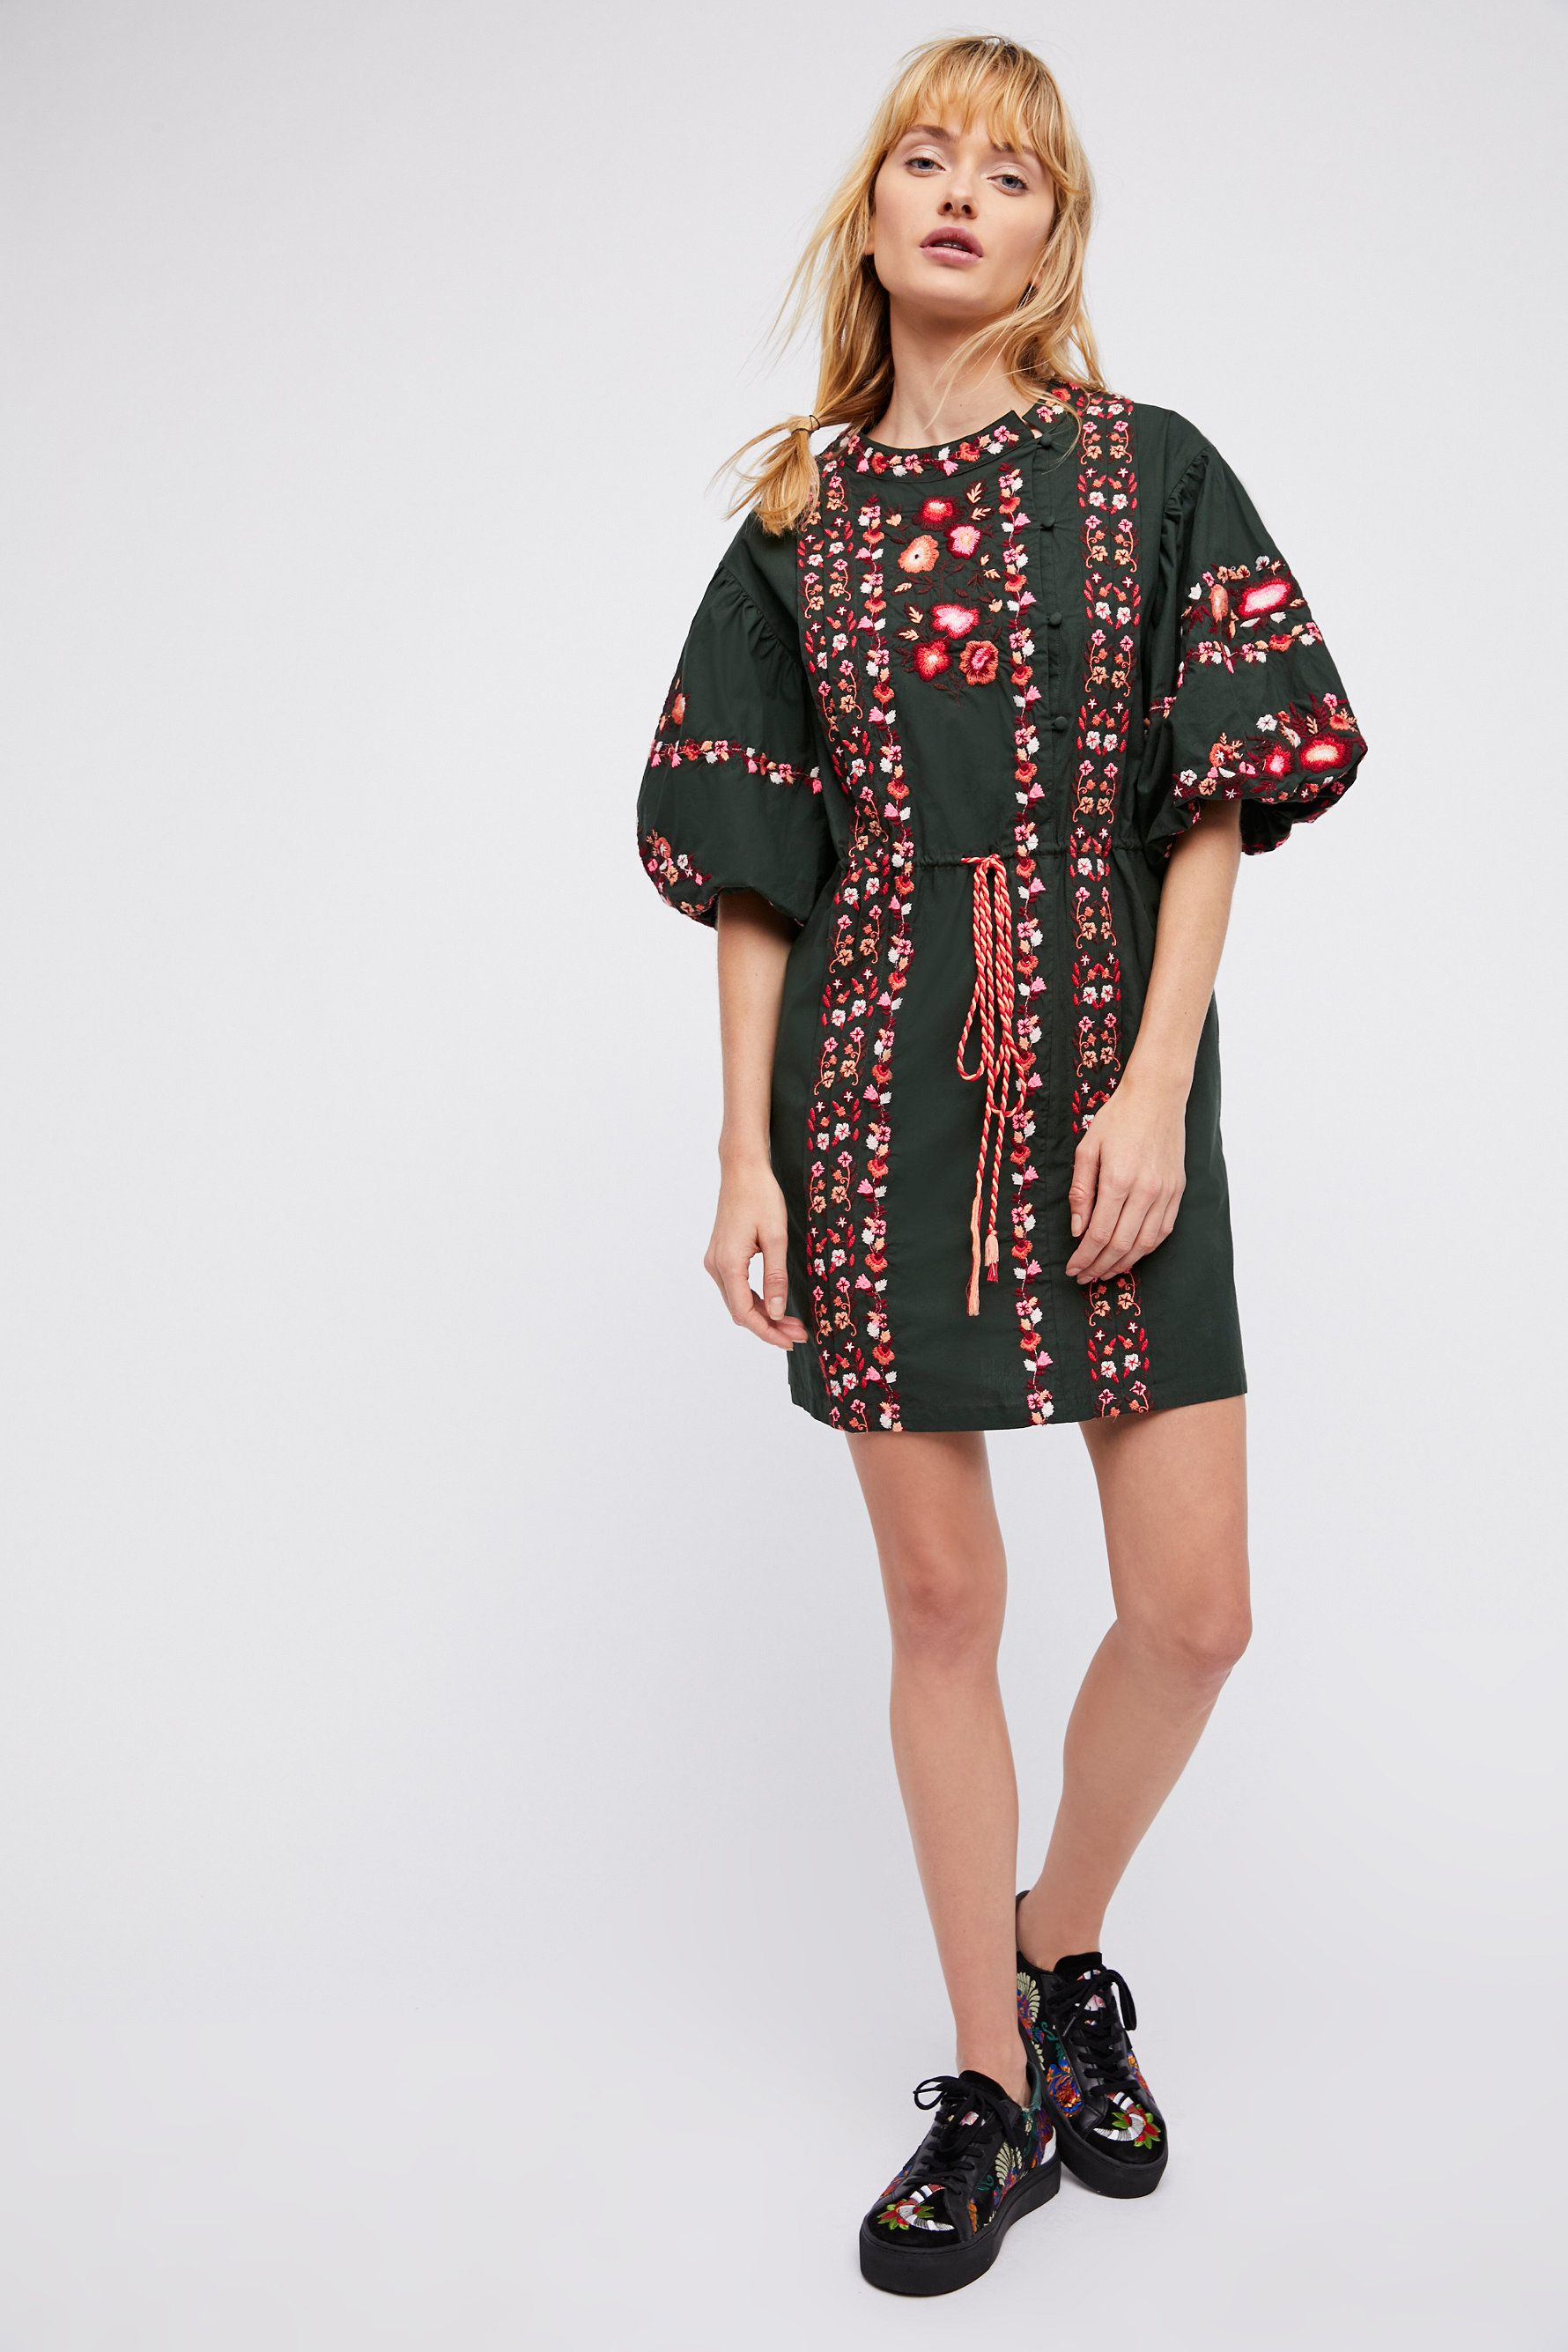 Fall Outfits Dresses Free People Havana Embroidered Mini Dress In A Gorgeous Green Color Love This For Cute And Fun